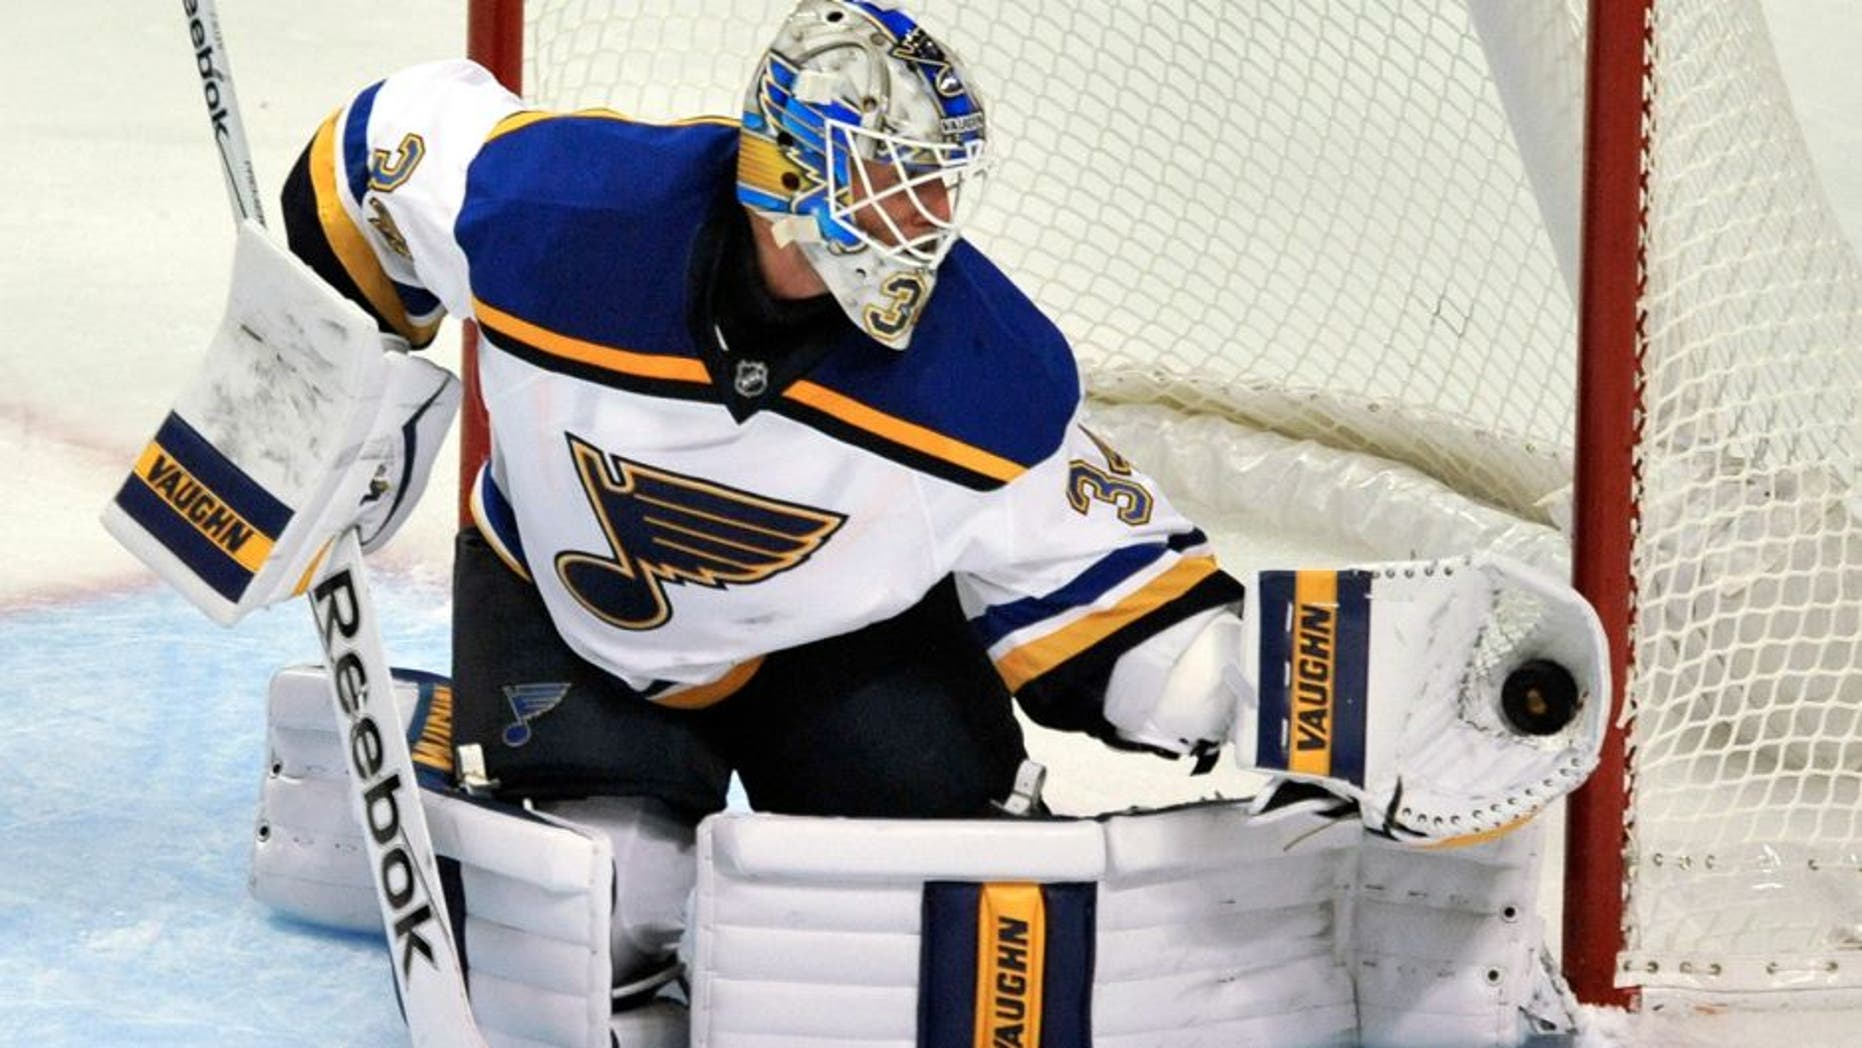 St. Louis Blues goalie Jake Allen (34) makes a save during the second period of a preseason NHL hockey game against the Chicago Blackhawks on Saturday, Sept. 26, 2015, in Chicago. (AP Photo/Paul Beaty)